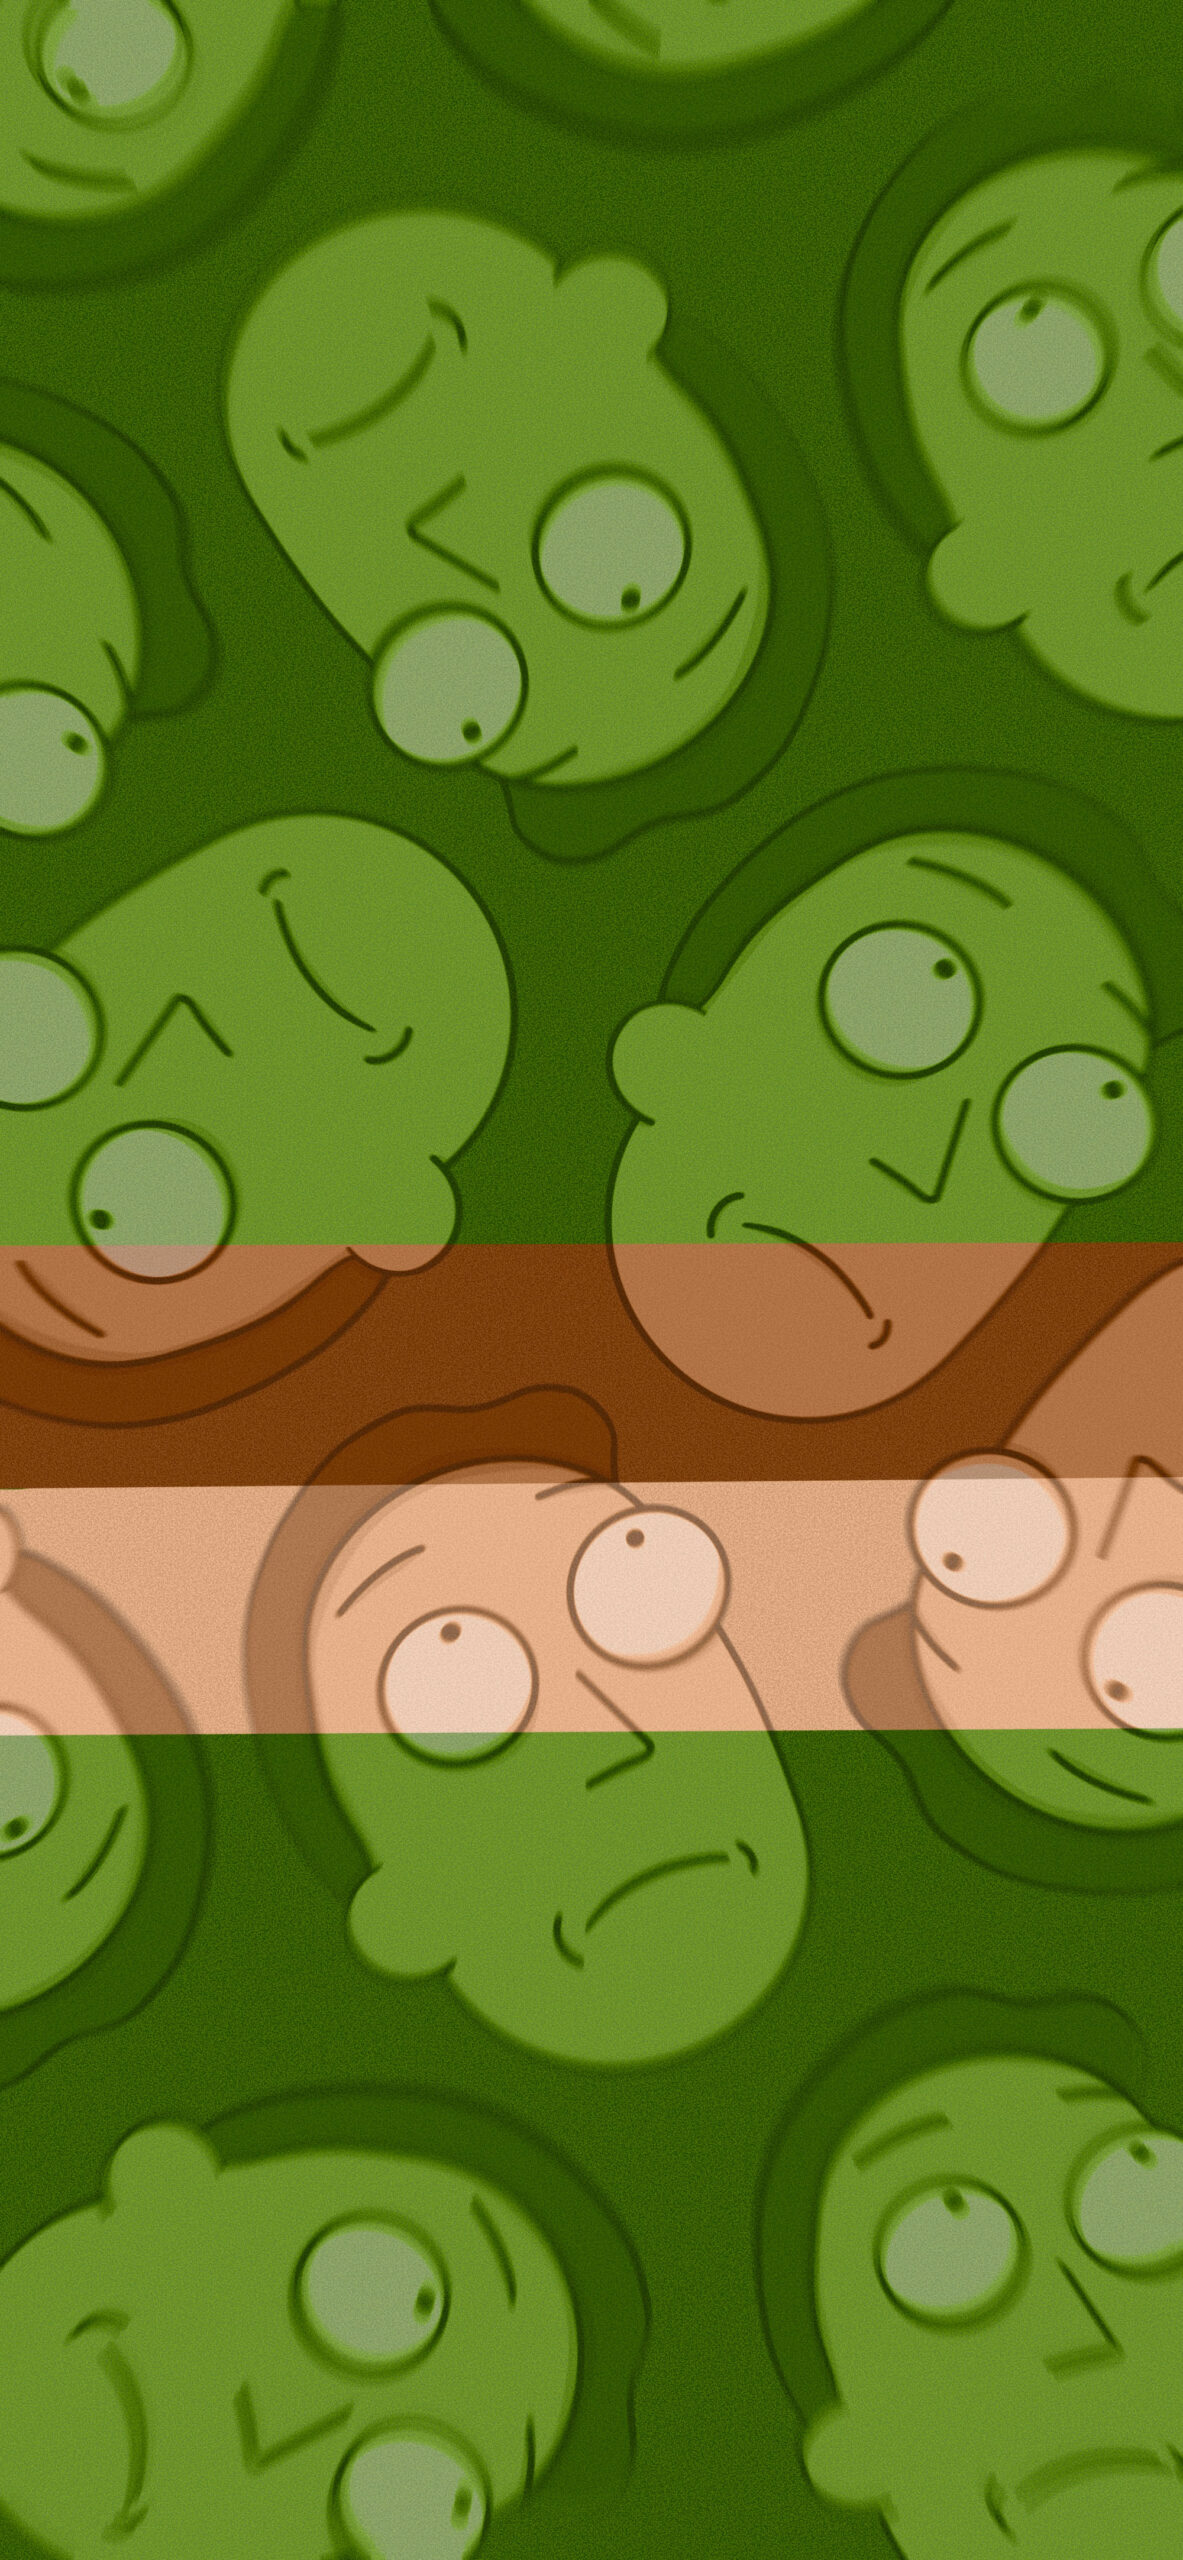 rick and morty jerry smith green background